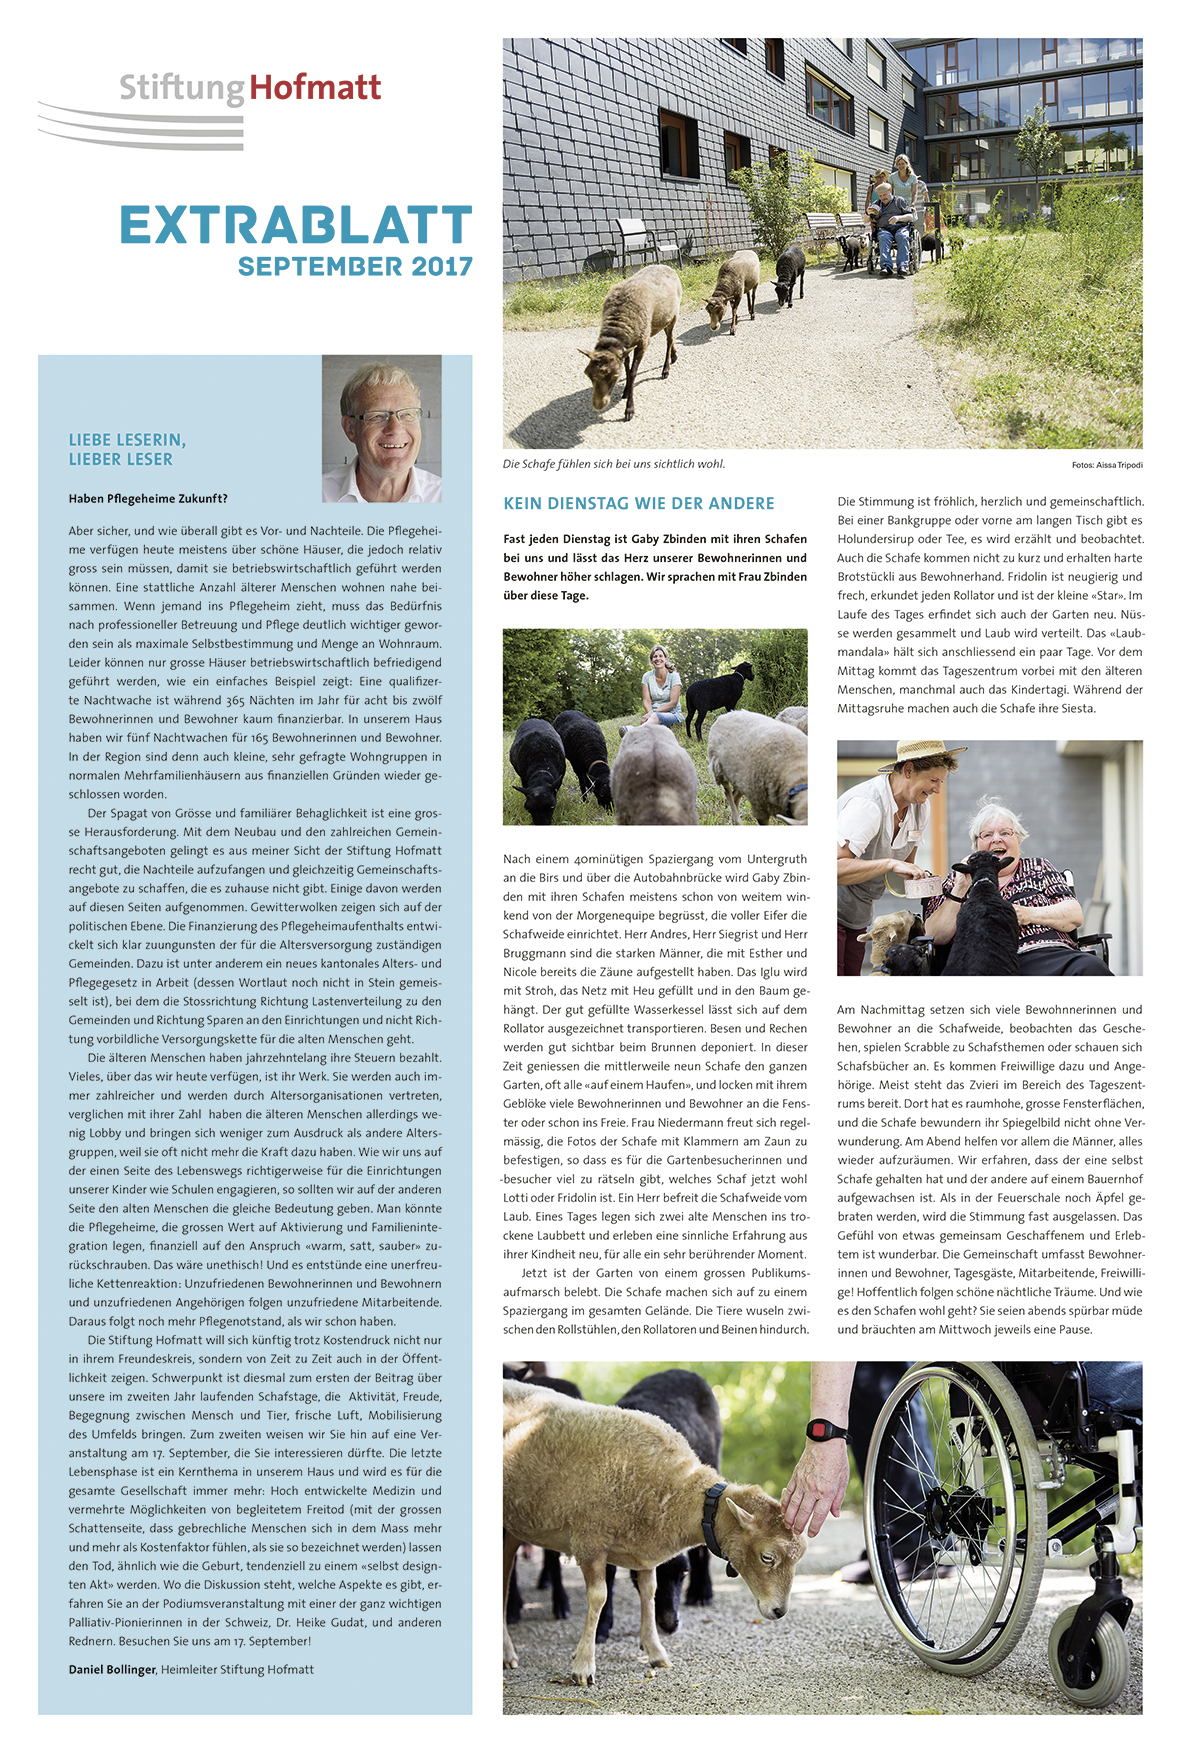 Extrablatt September 2017